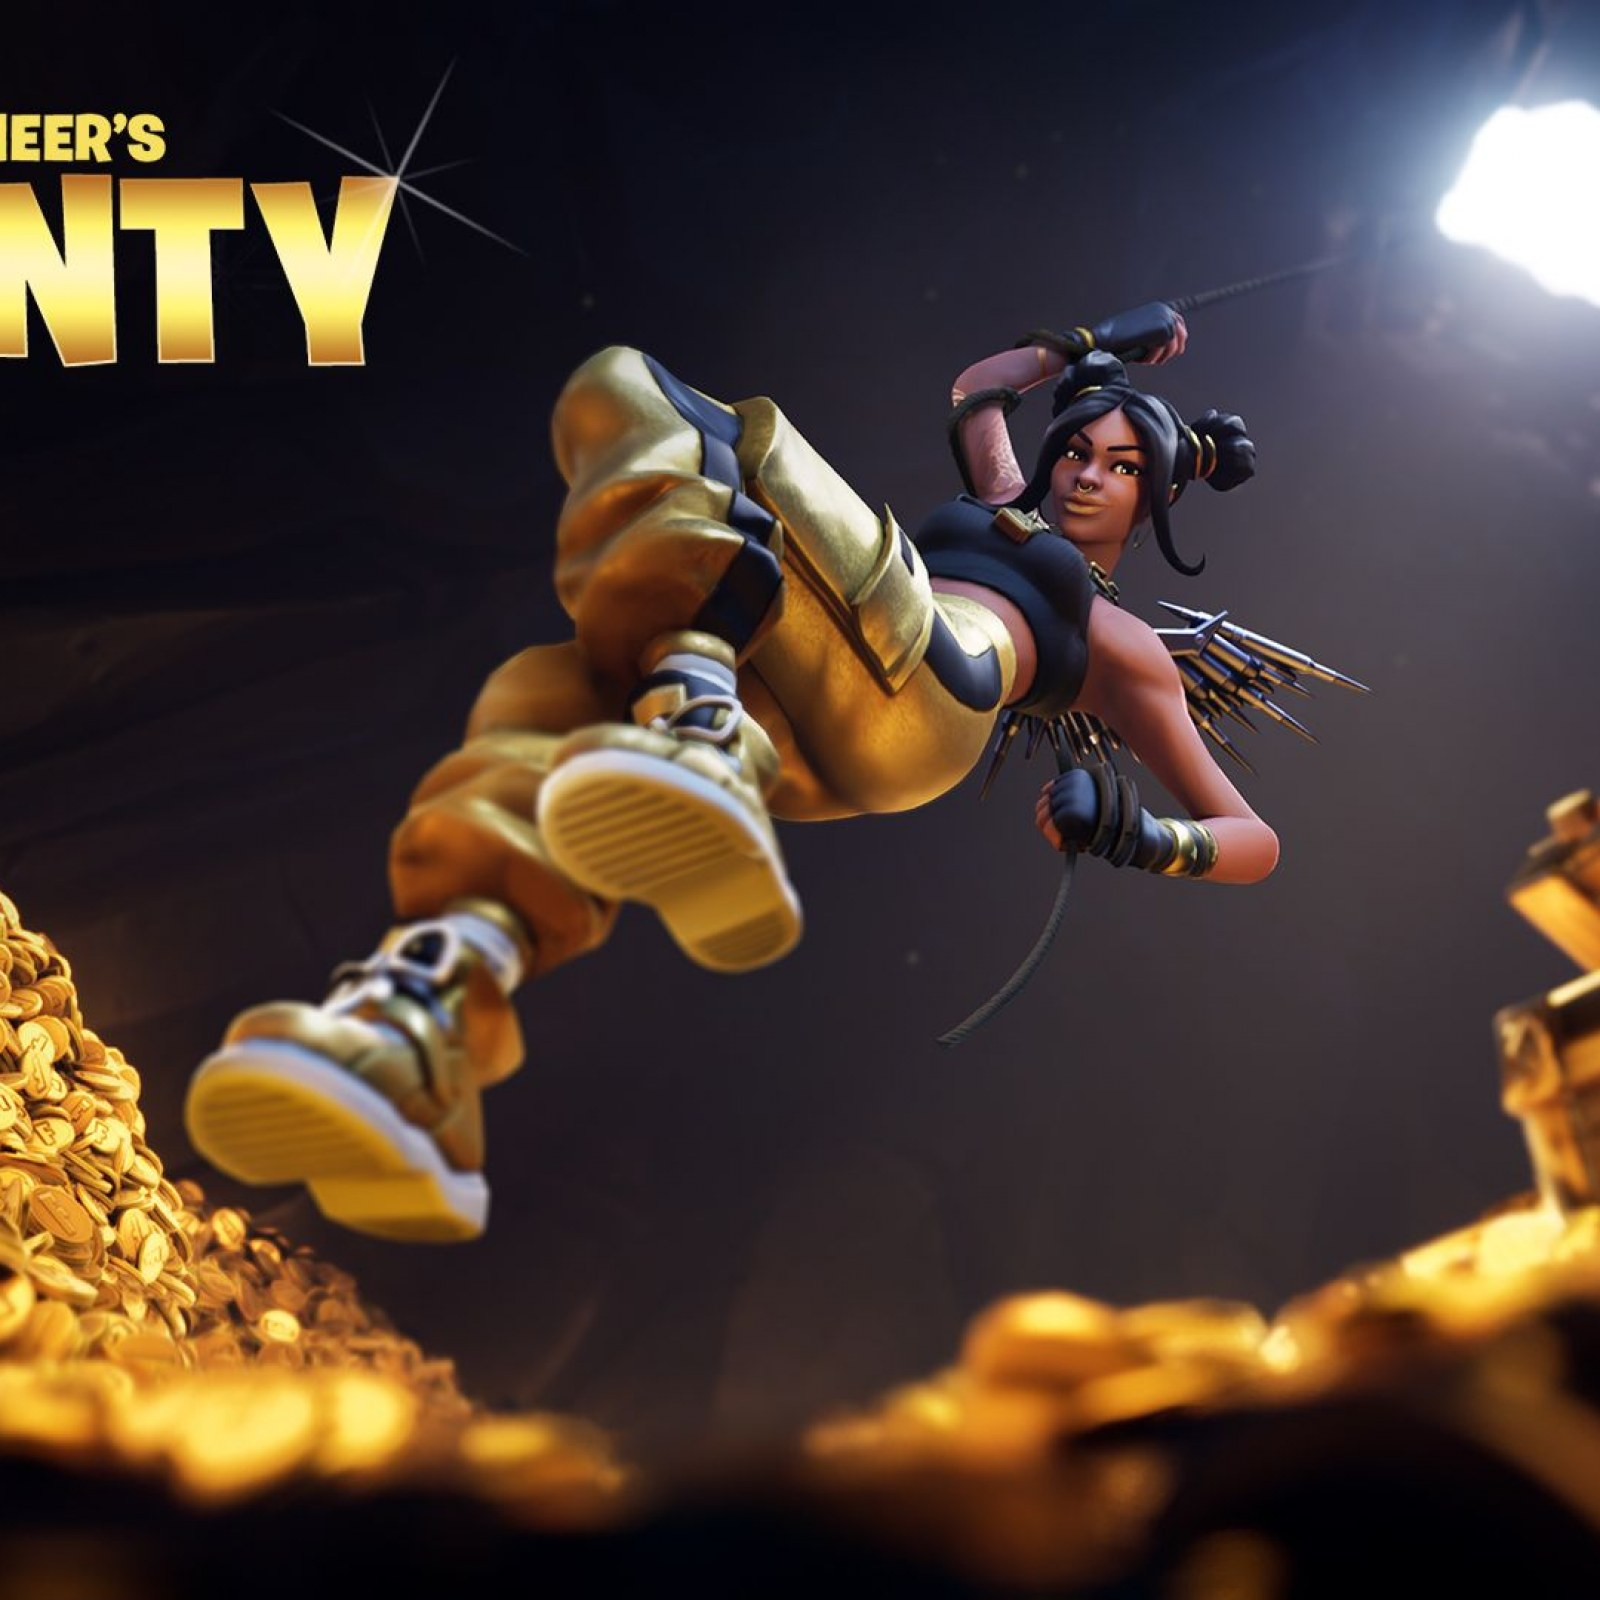 Fortnite' Update 8 30 Adds Reboot Van & Buccaneer's Bounty - Patch Notes